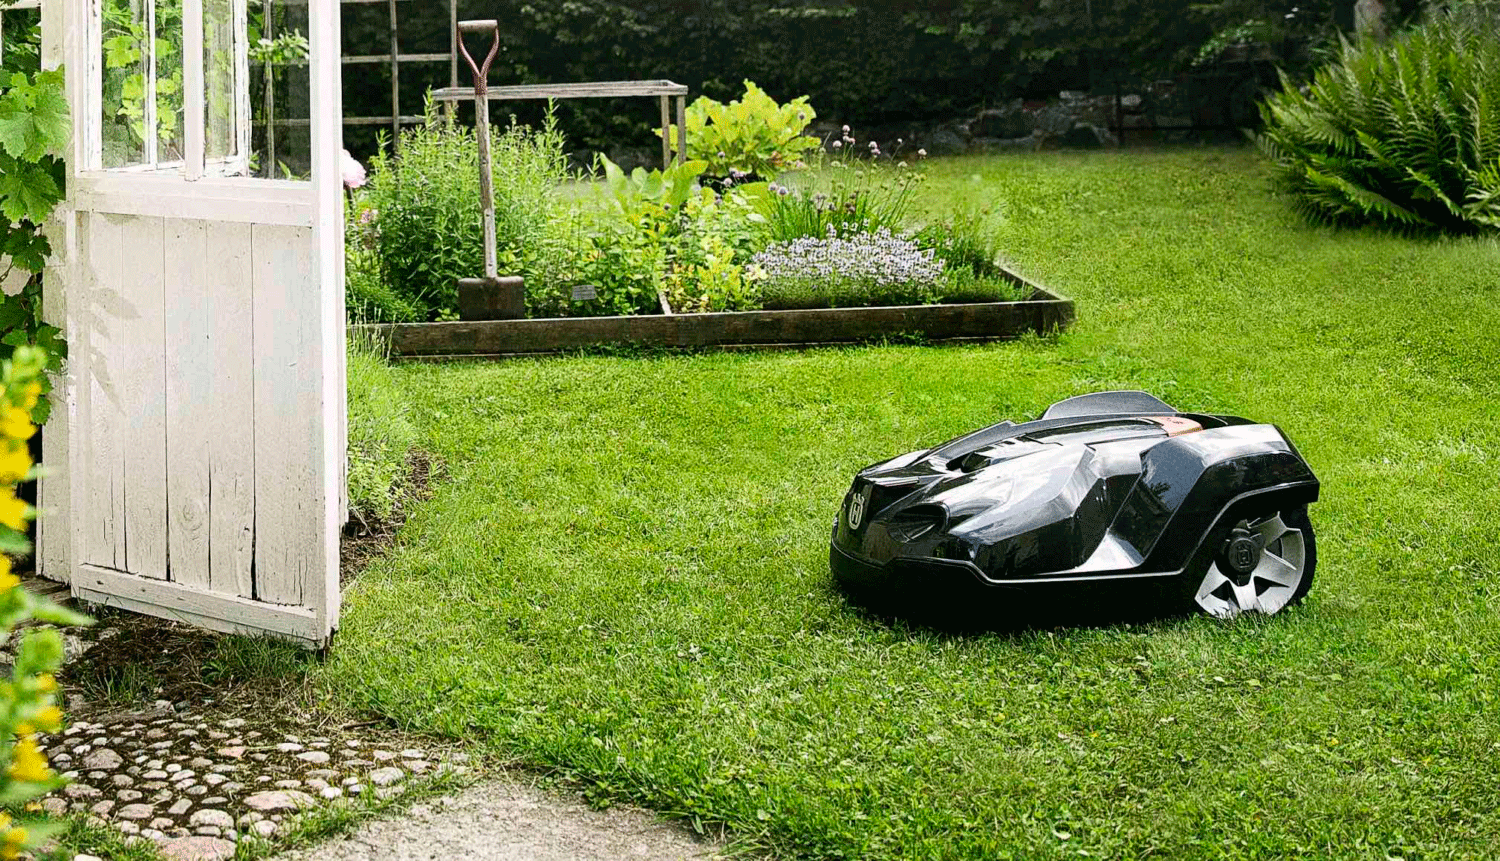 Best Father's Day Gift List: Husqvama Automower